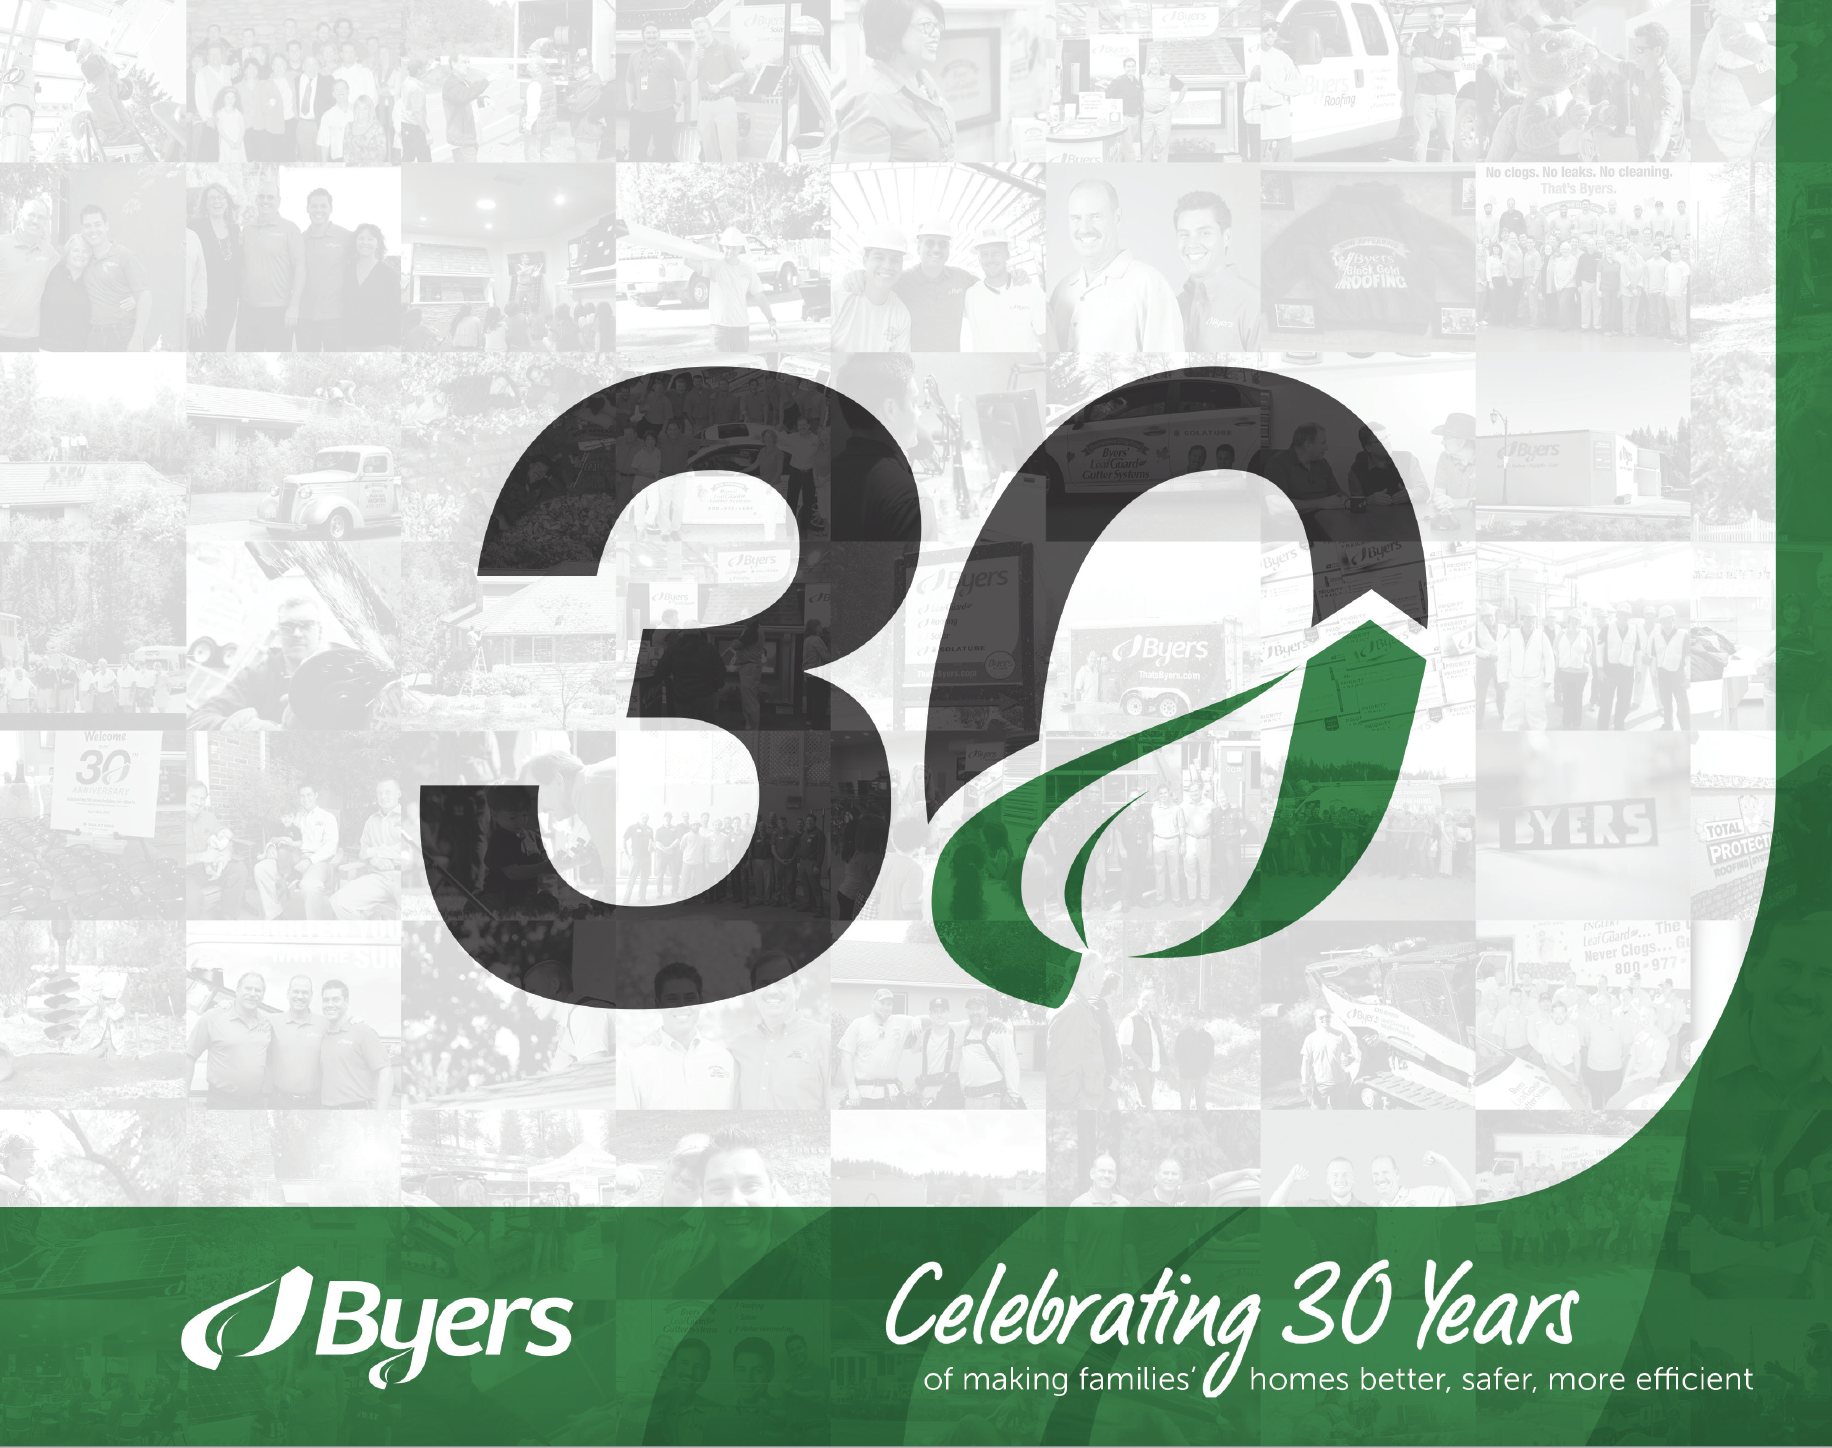 Byers 30th Anniversary Booklet Thumbler Digital Marketing Strategy